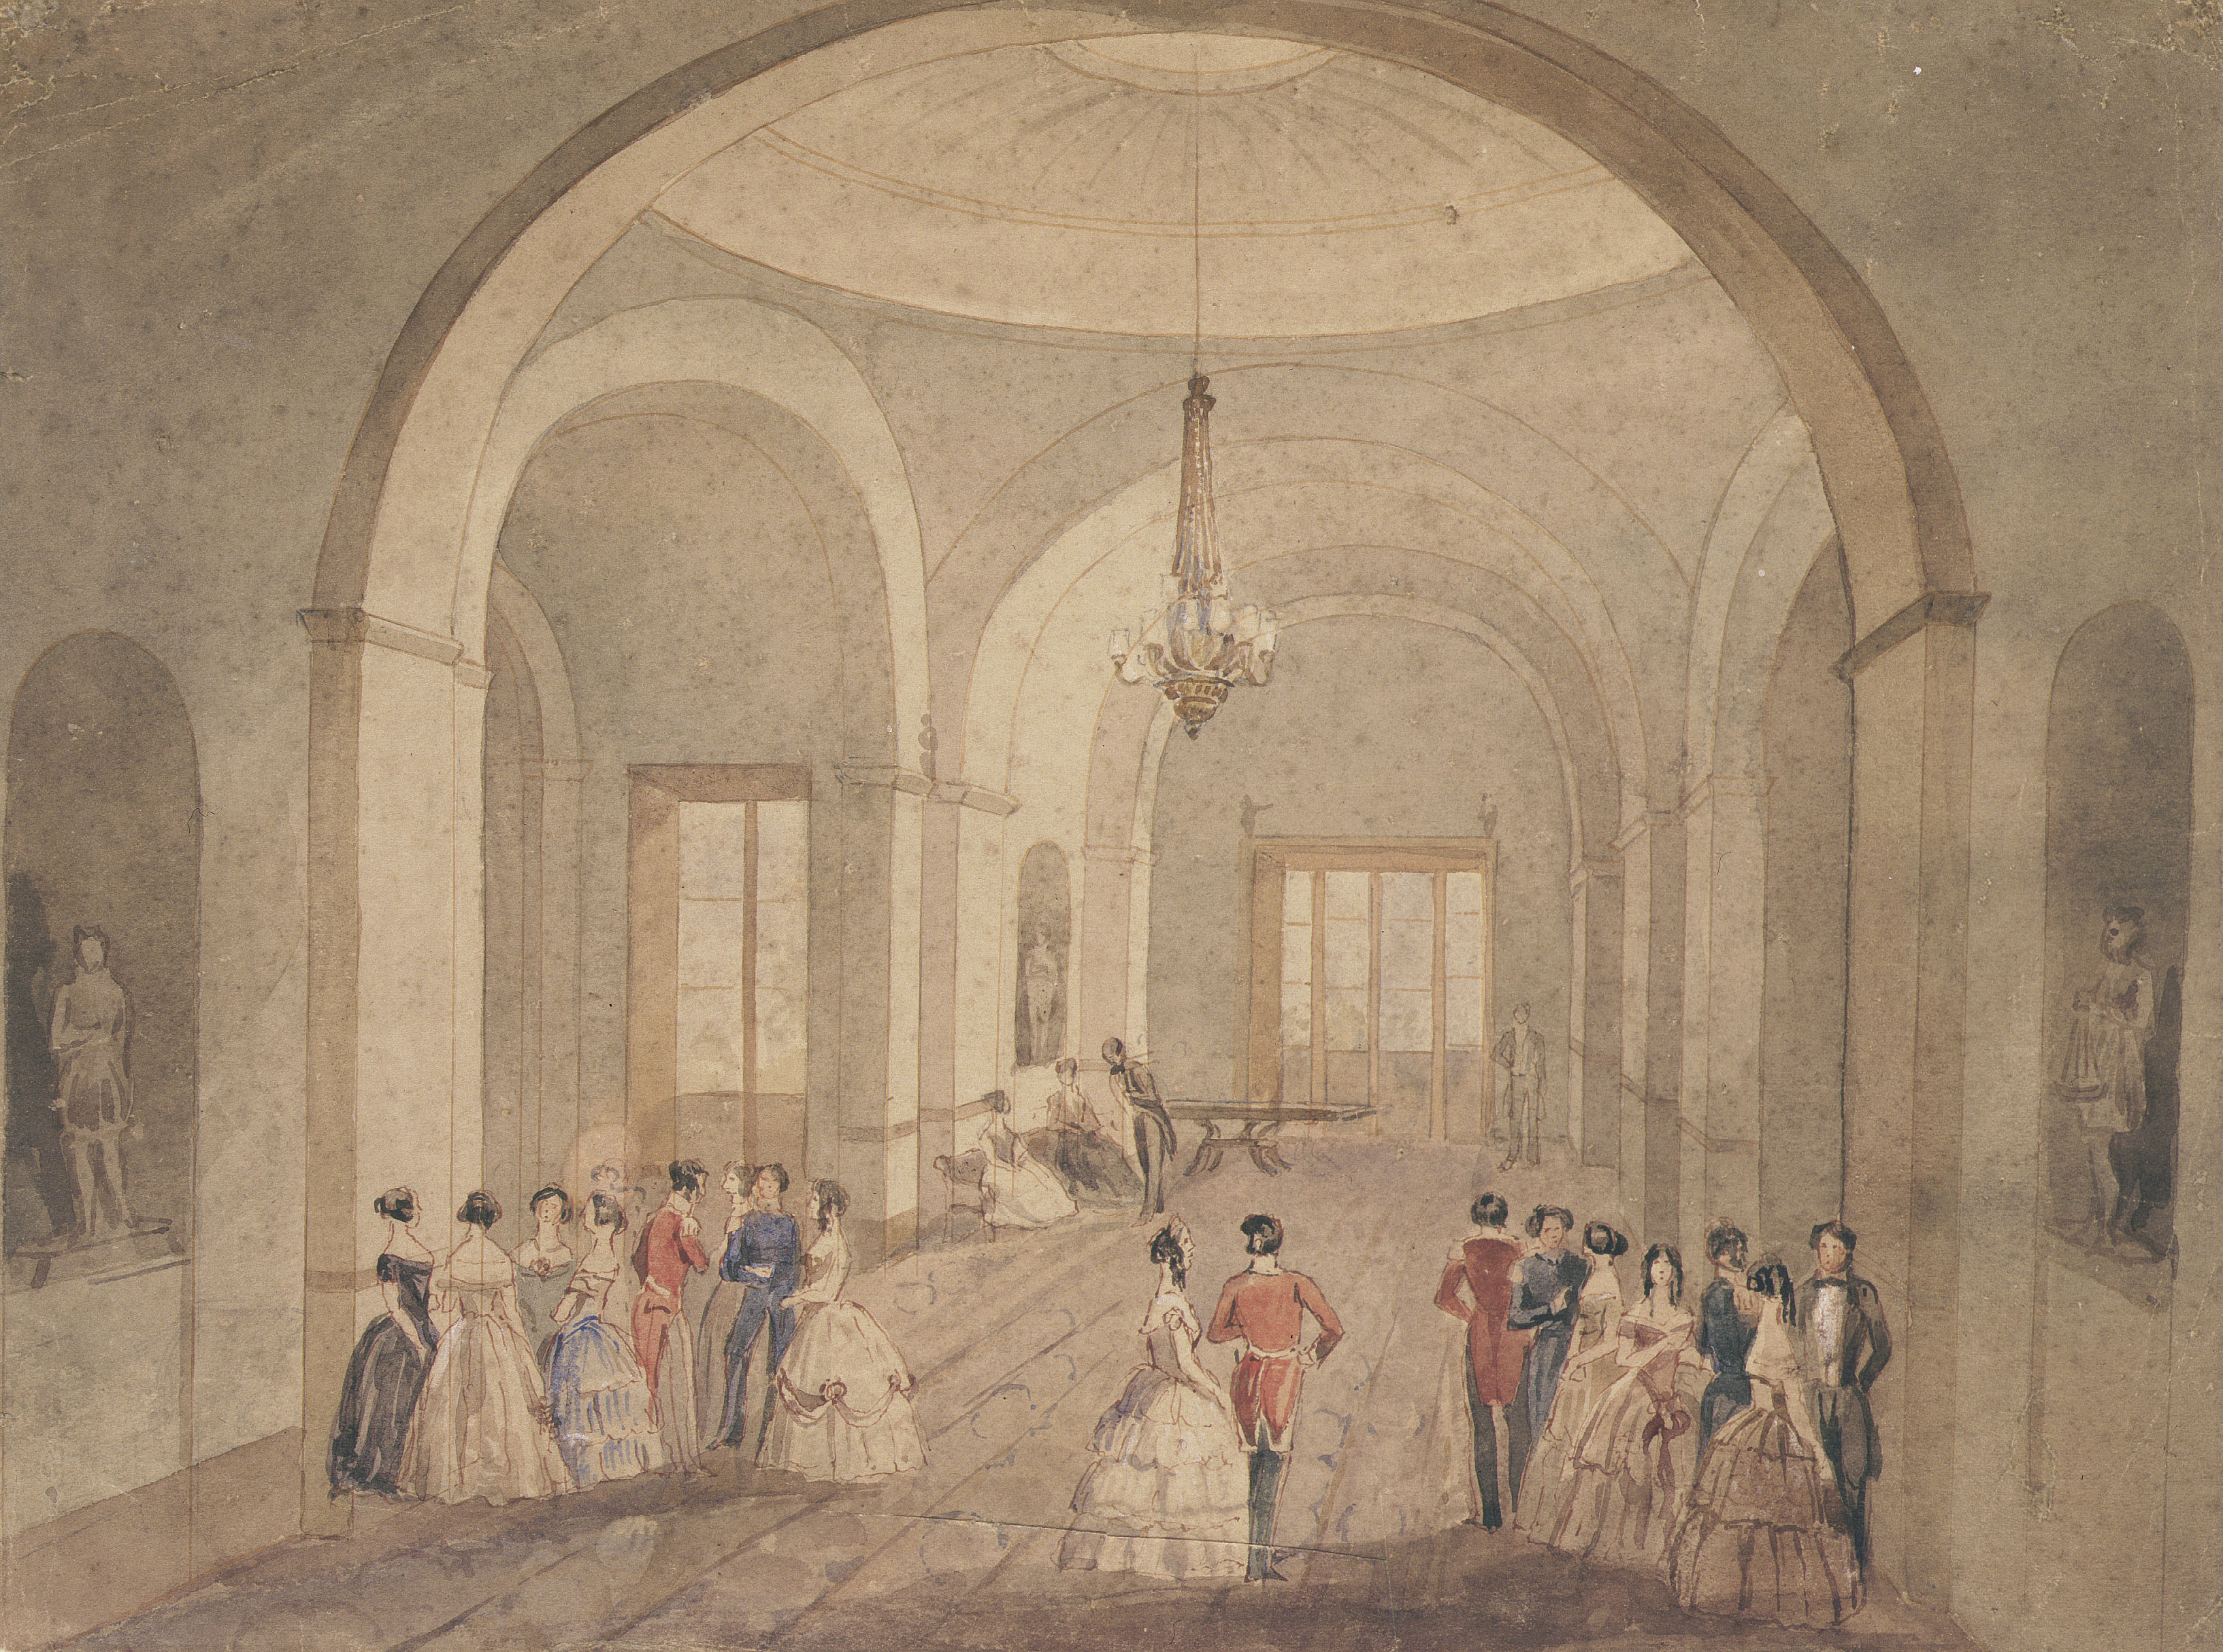 An illustration of a social hall, with ladies in dresses accompanied by men in tailcoats.